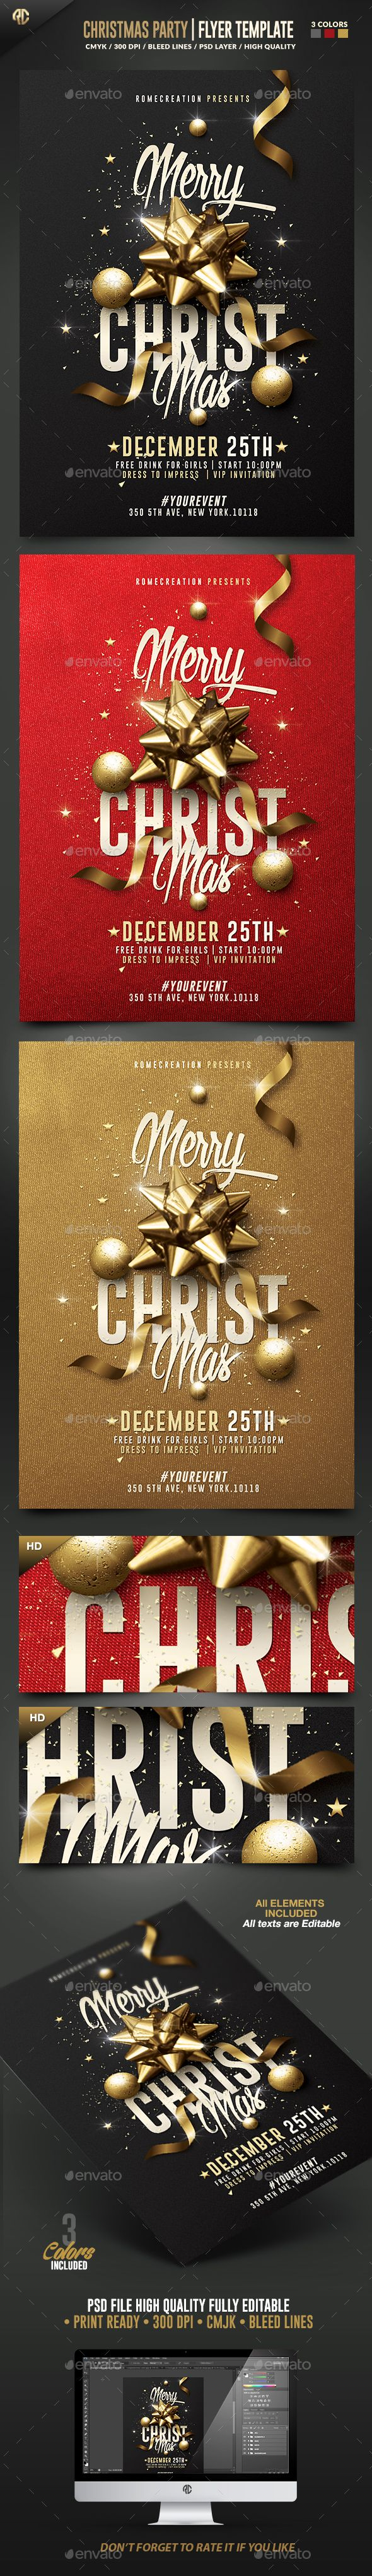 Classy Christmas Party Flyer Template PSD #design Download:  Http://graphicriver.